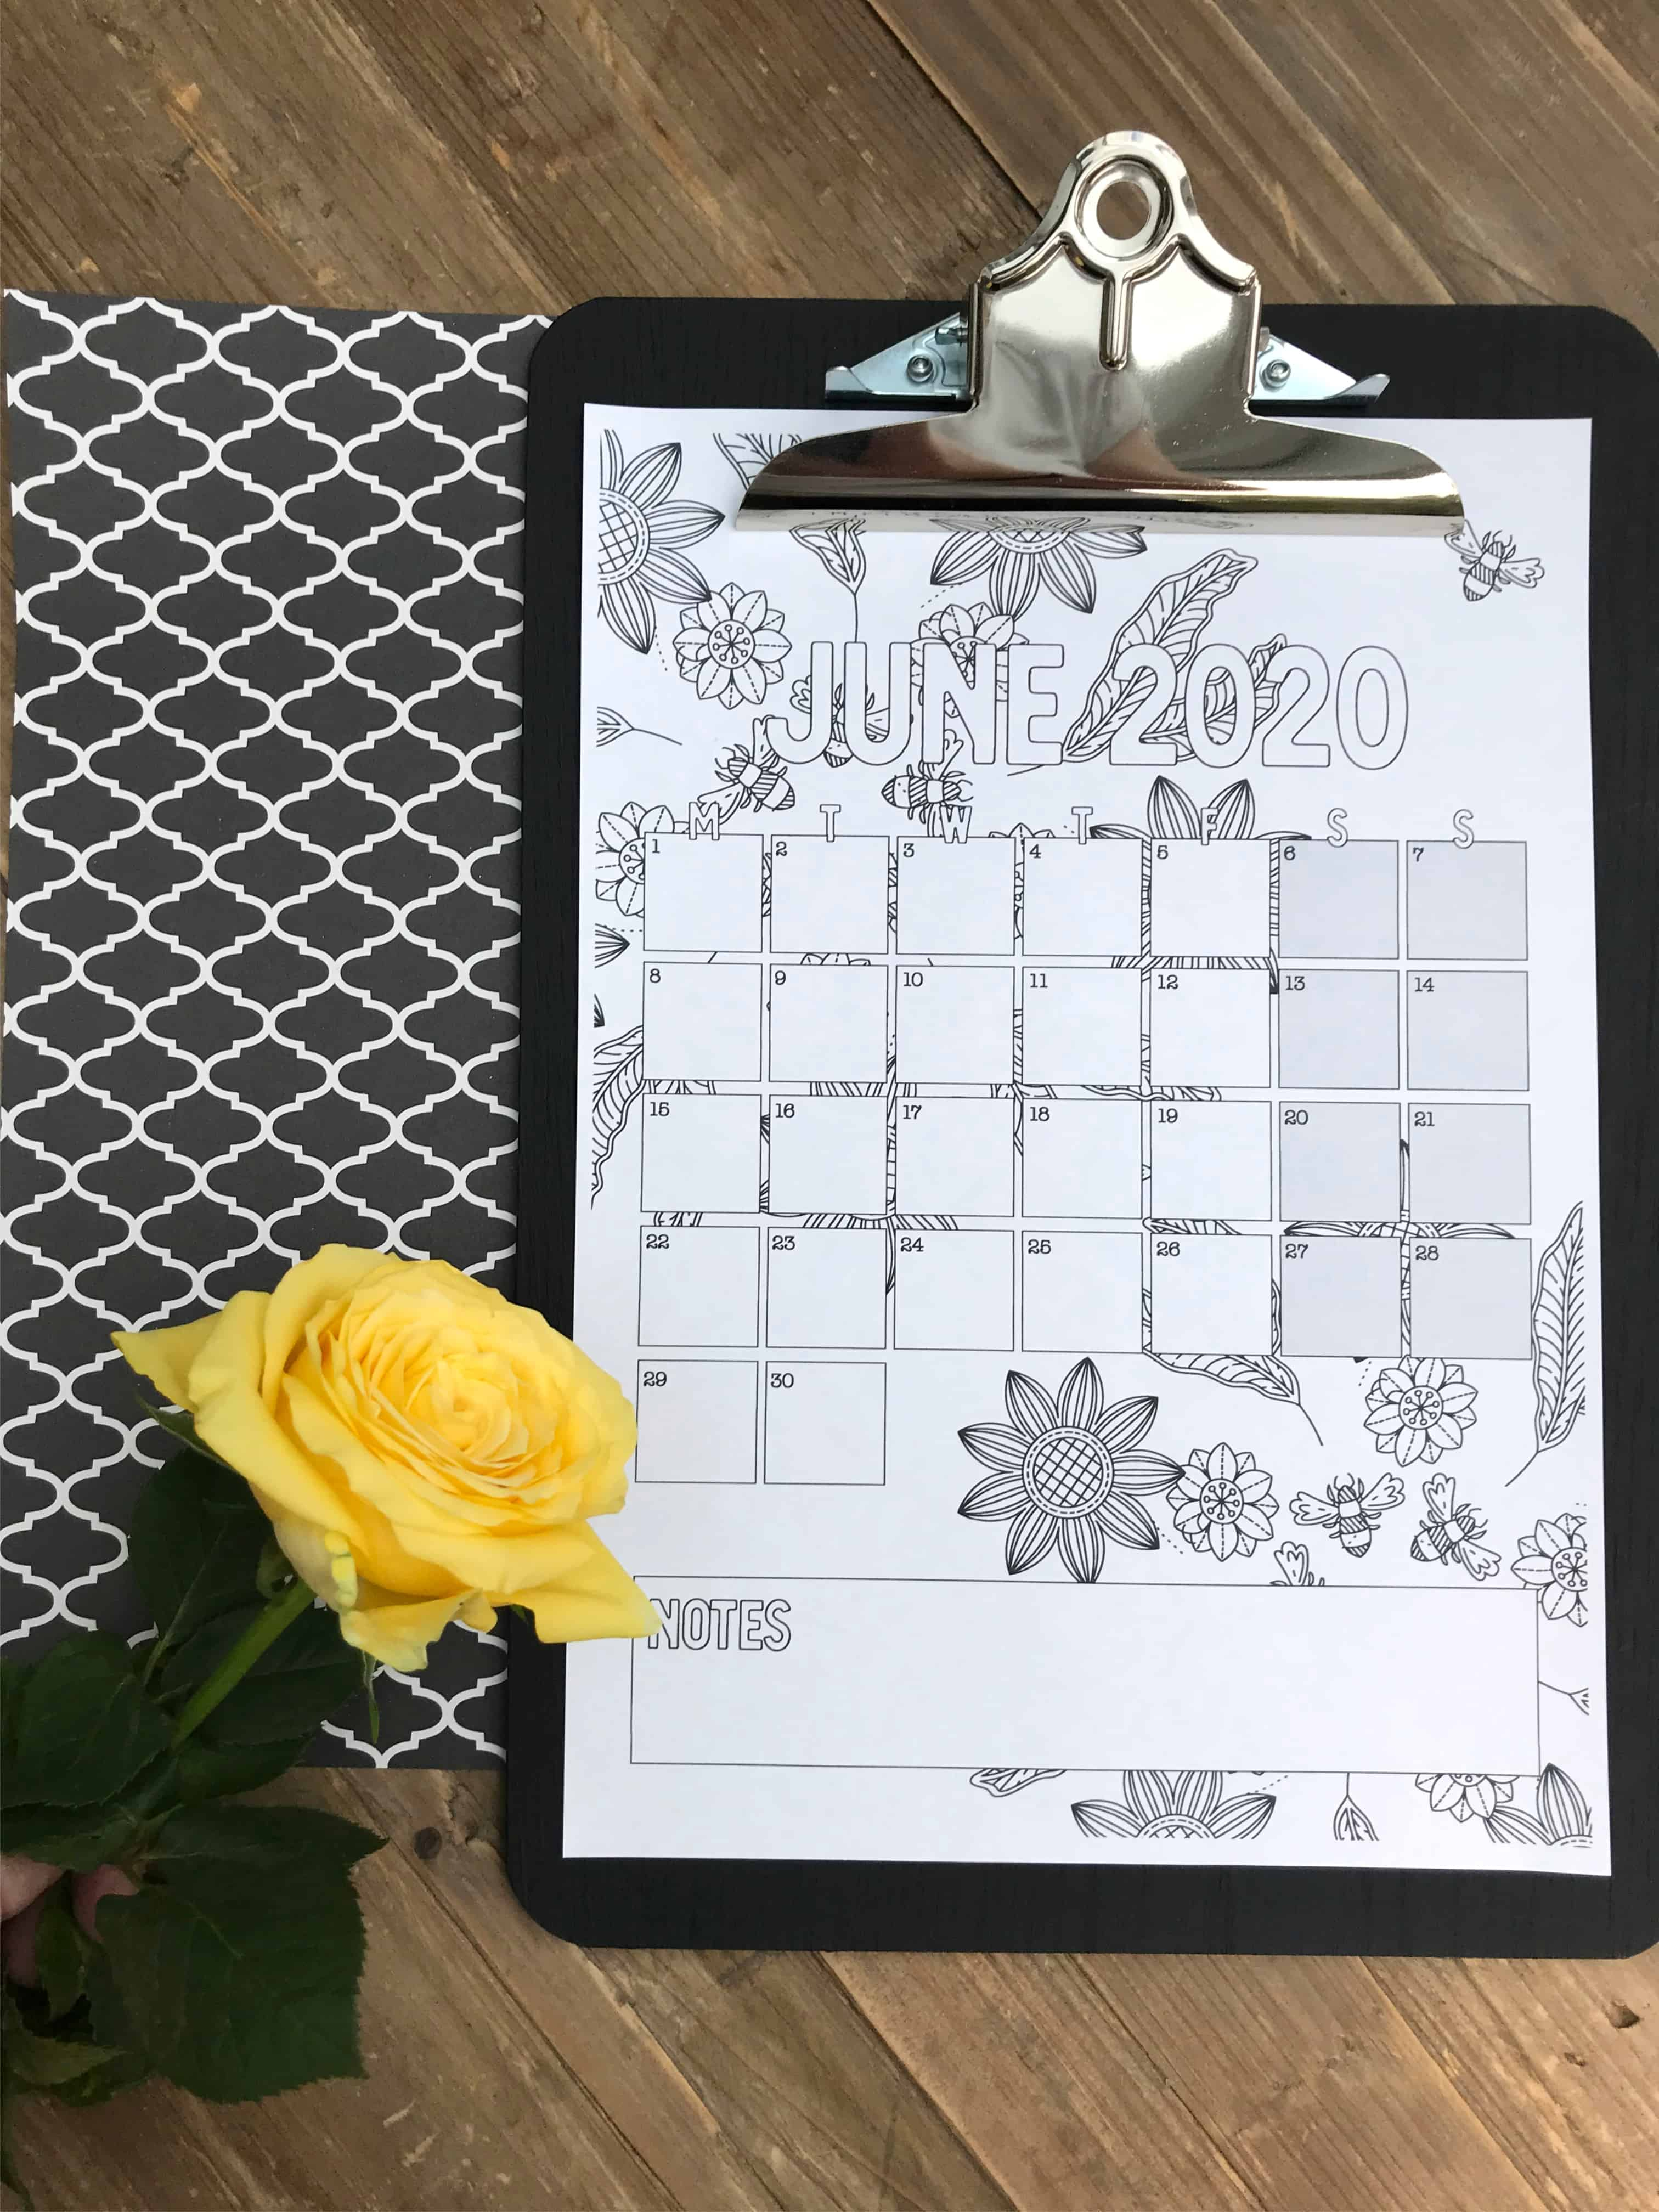 Colouring In Monthly Planner In Situ